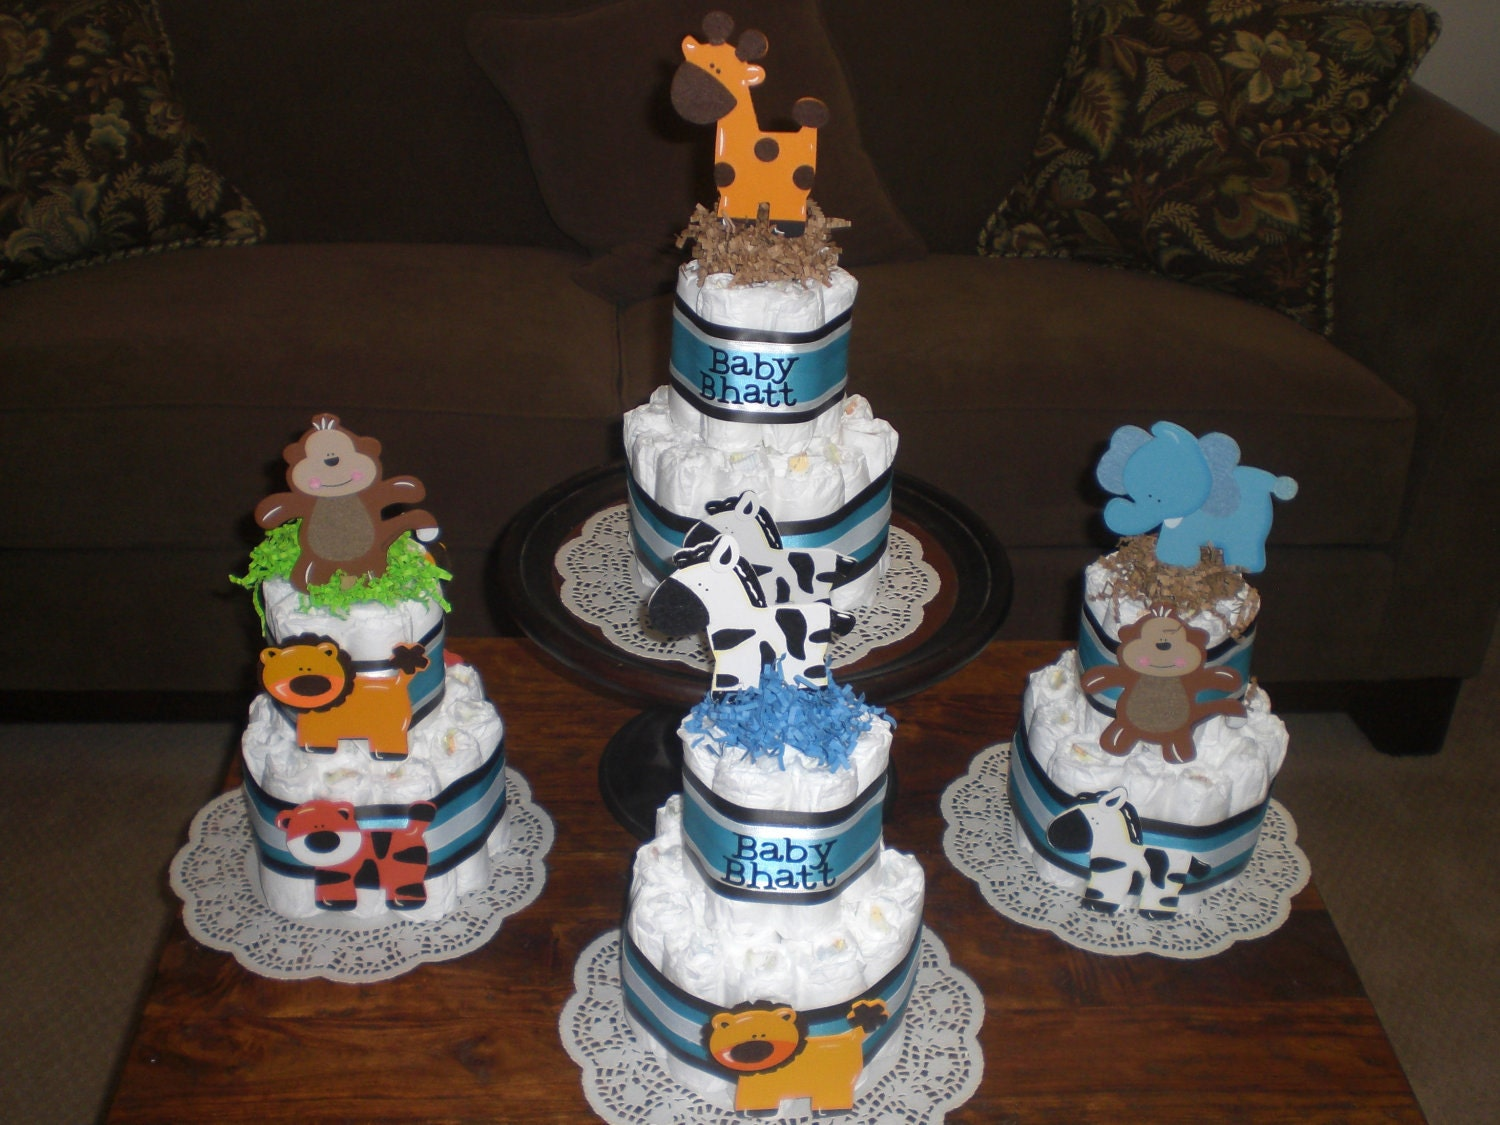 Cake Centerpieces For Baby Shower : Jungle Safari Theme Diaper Cake Baby Shower Centerpiece Safari